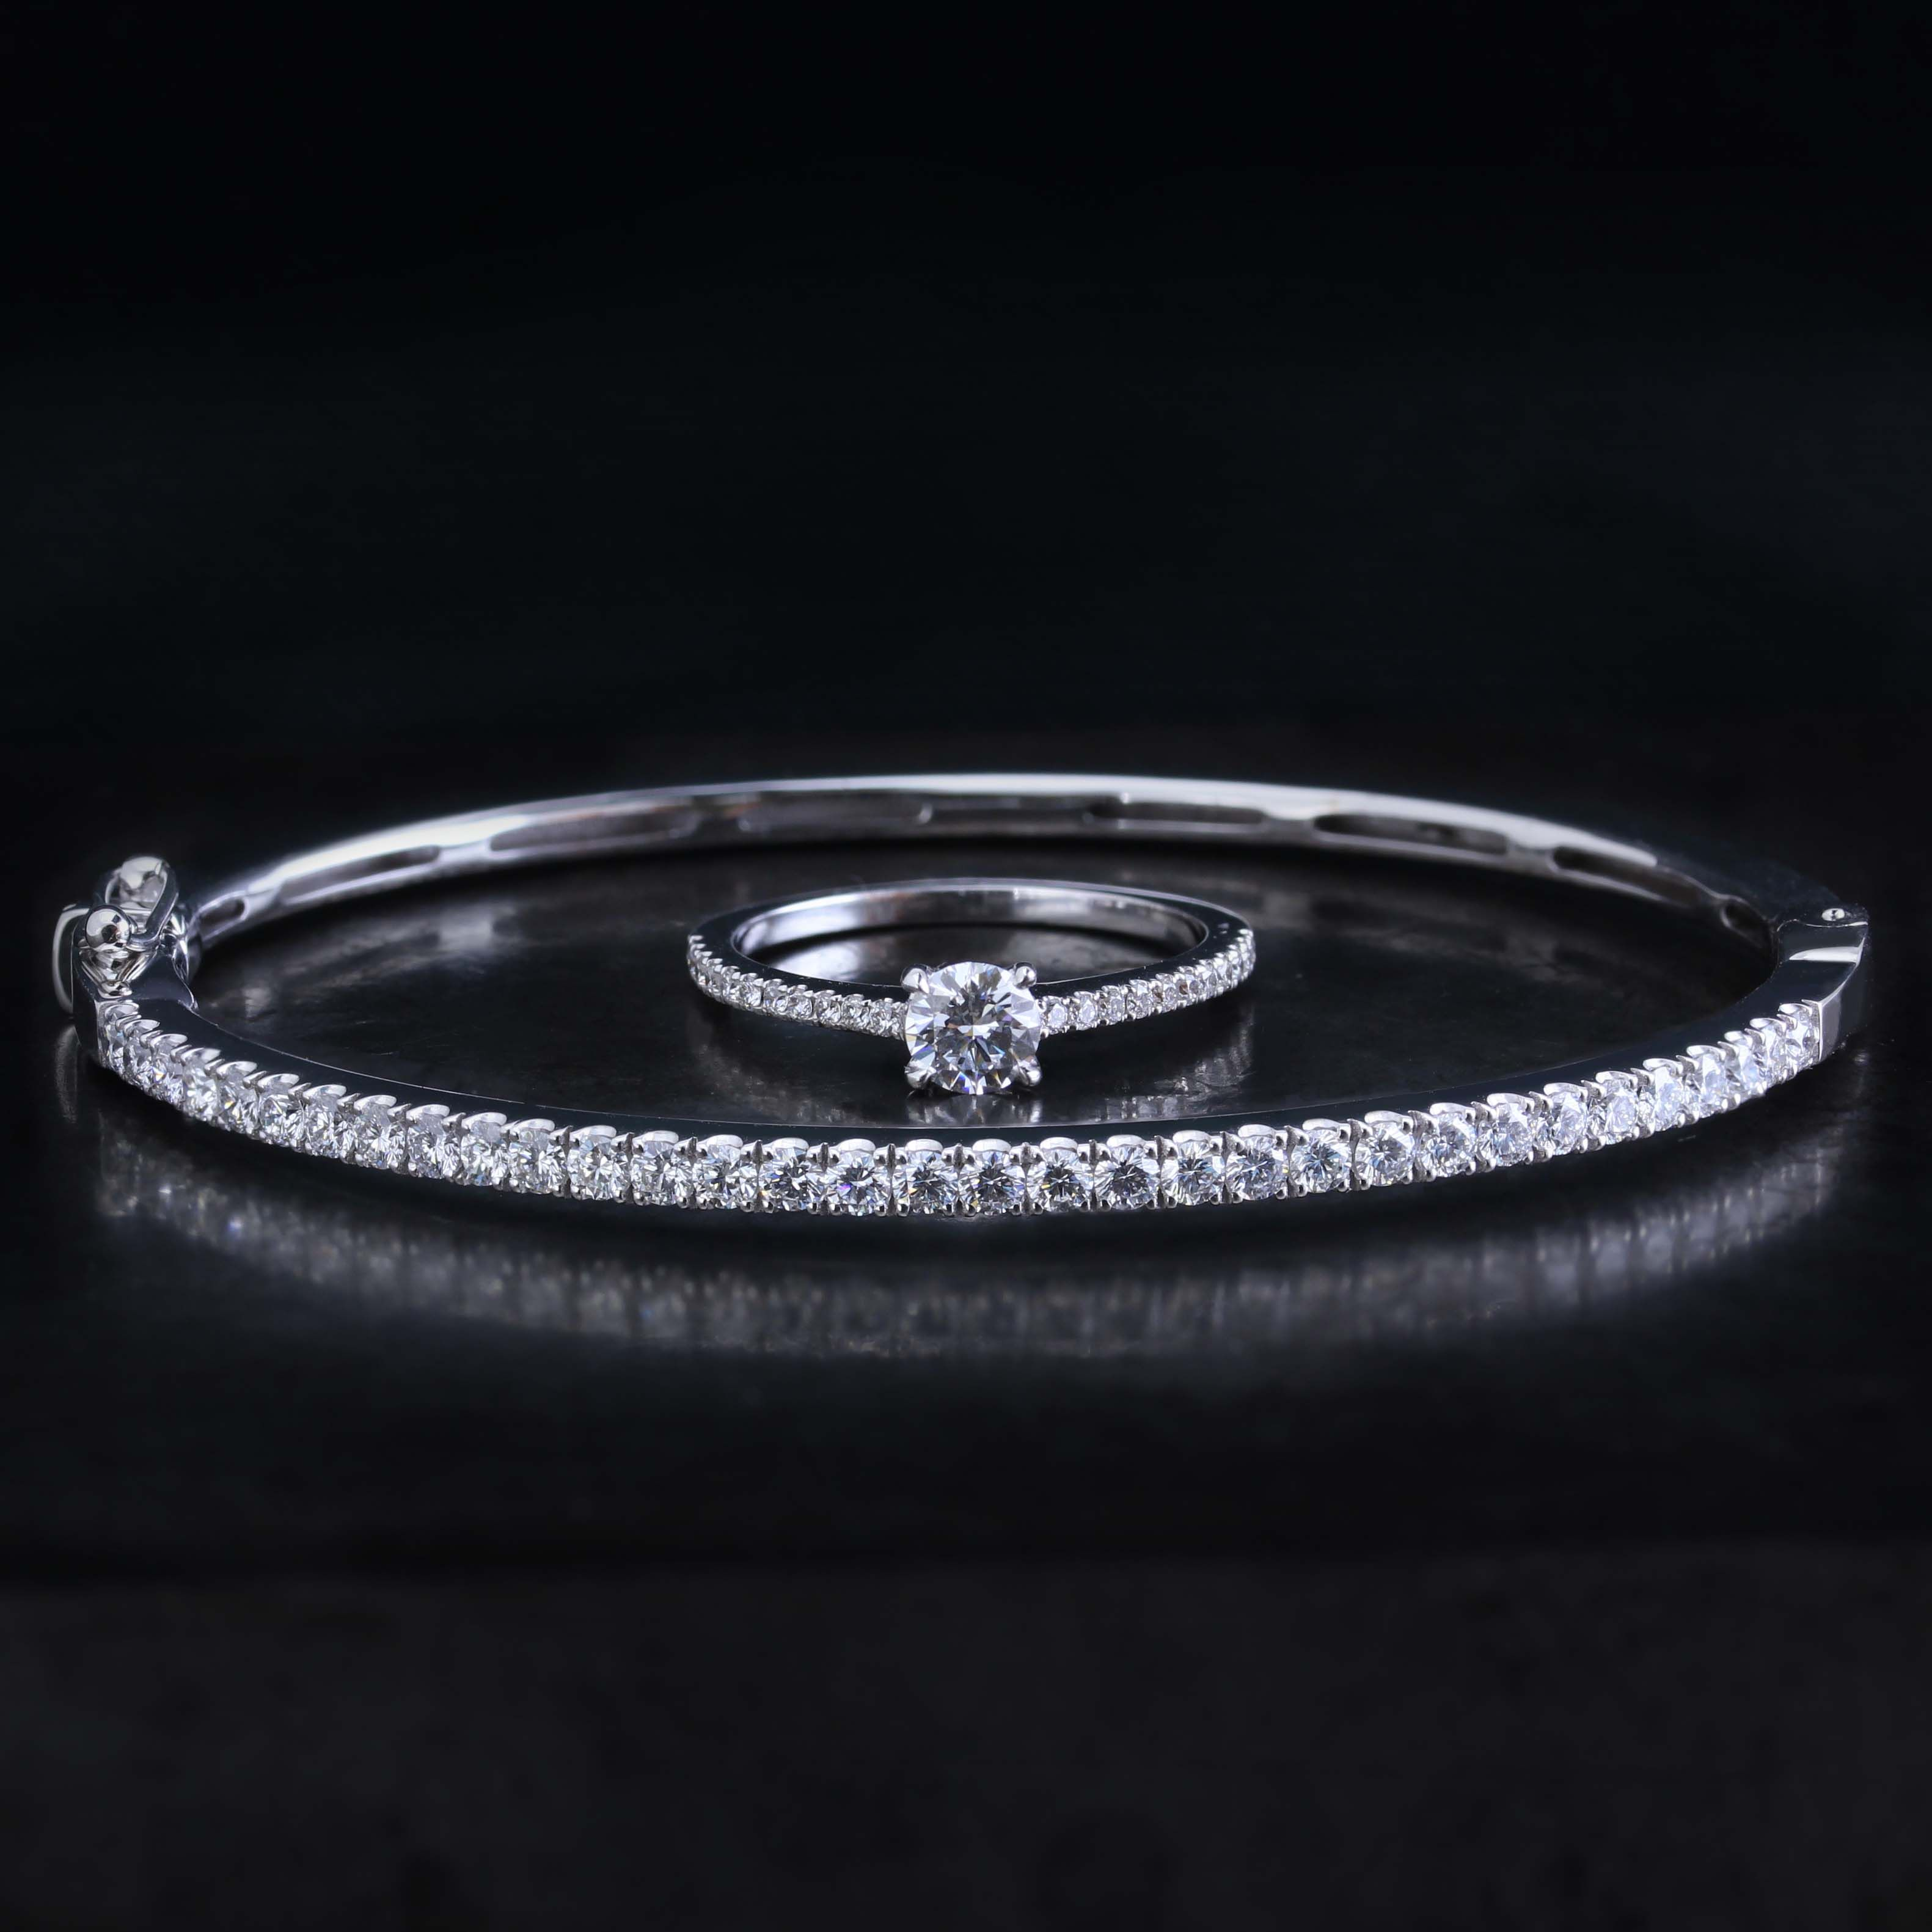 Bangle in white gold with castle set brilliant cut diamonds accompanied by a matching engagement ring.